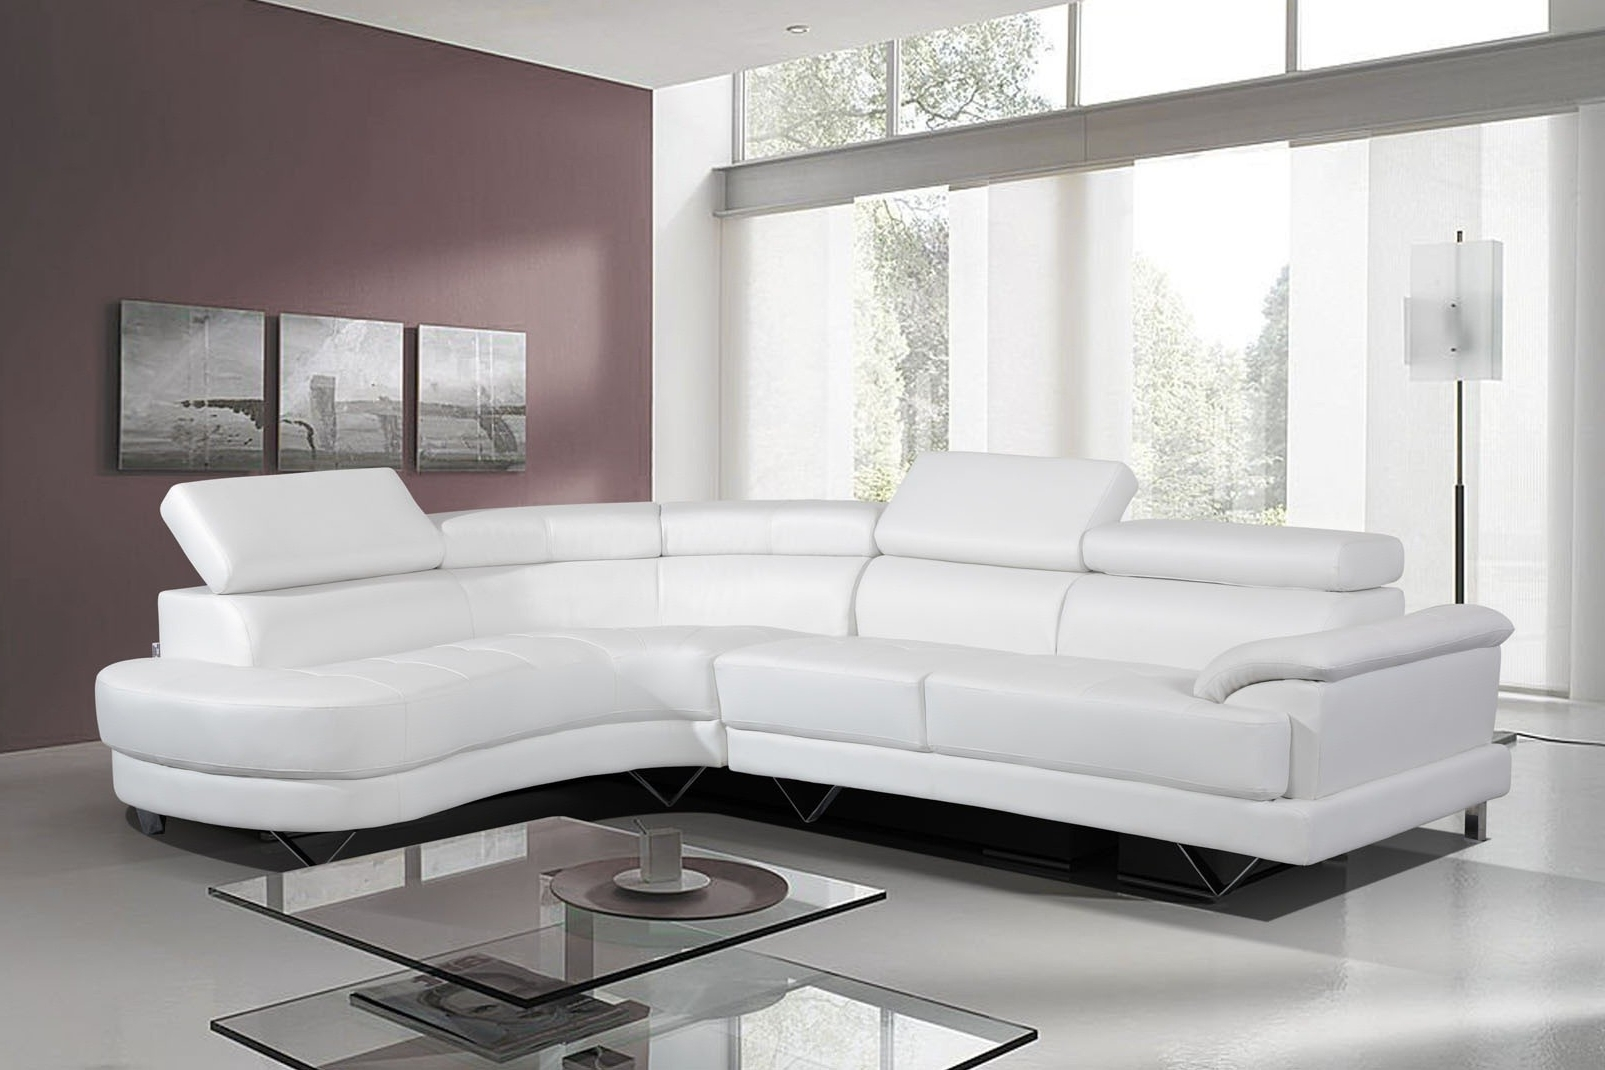 Leather Corner Sofas Pertaining To Well Known Leather Sofa Corner – Home And Textiles (View 6 of 15)